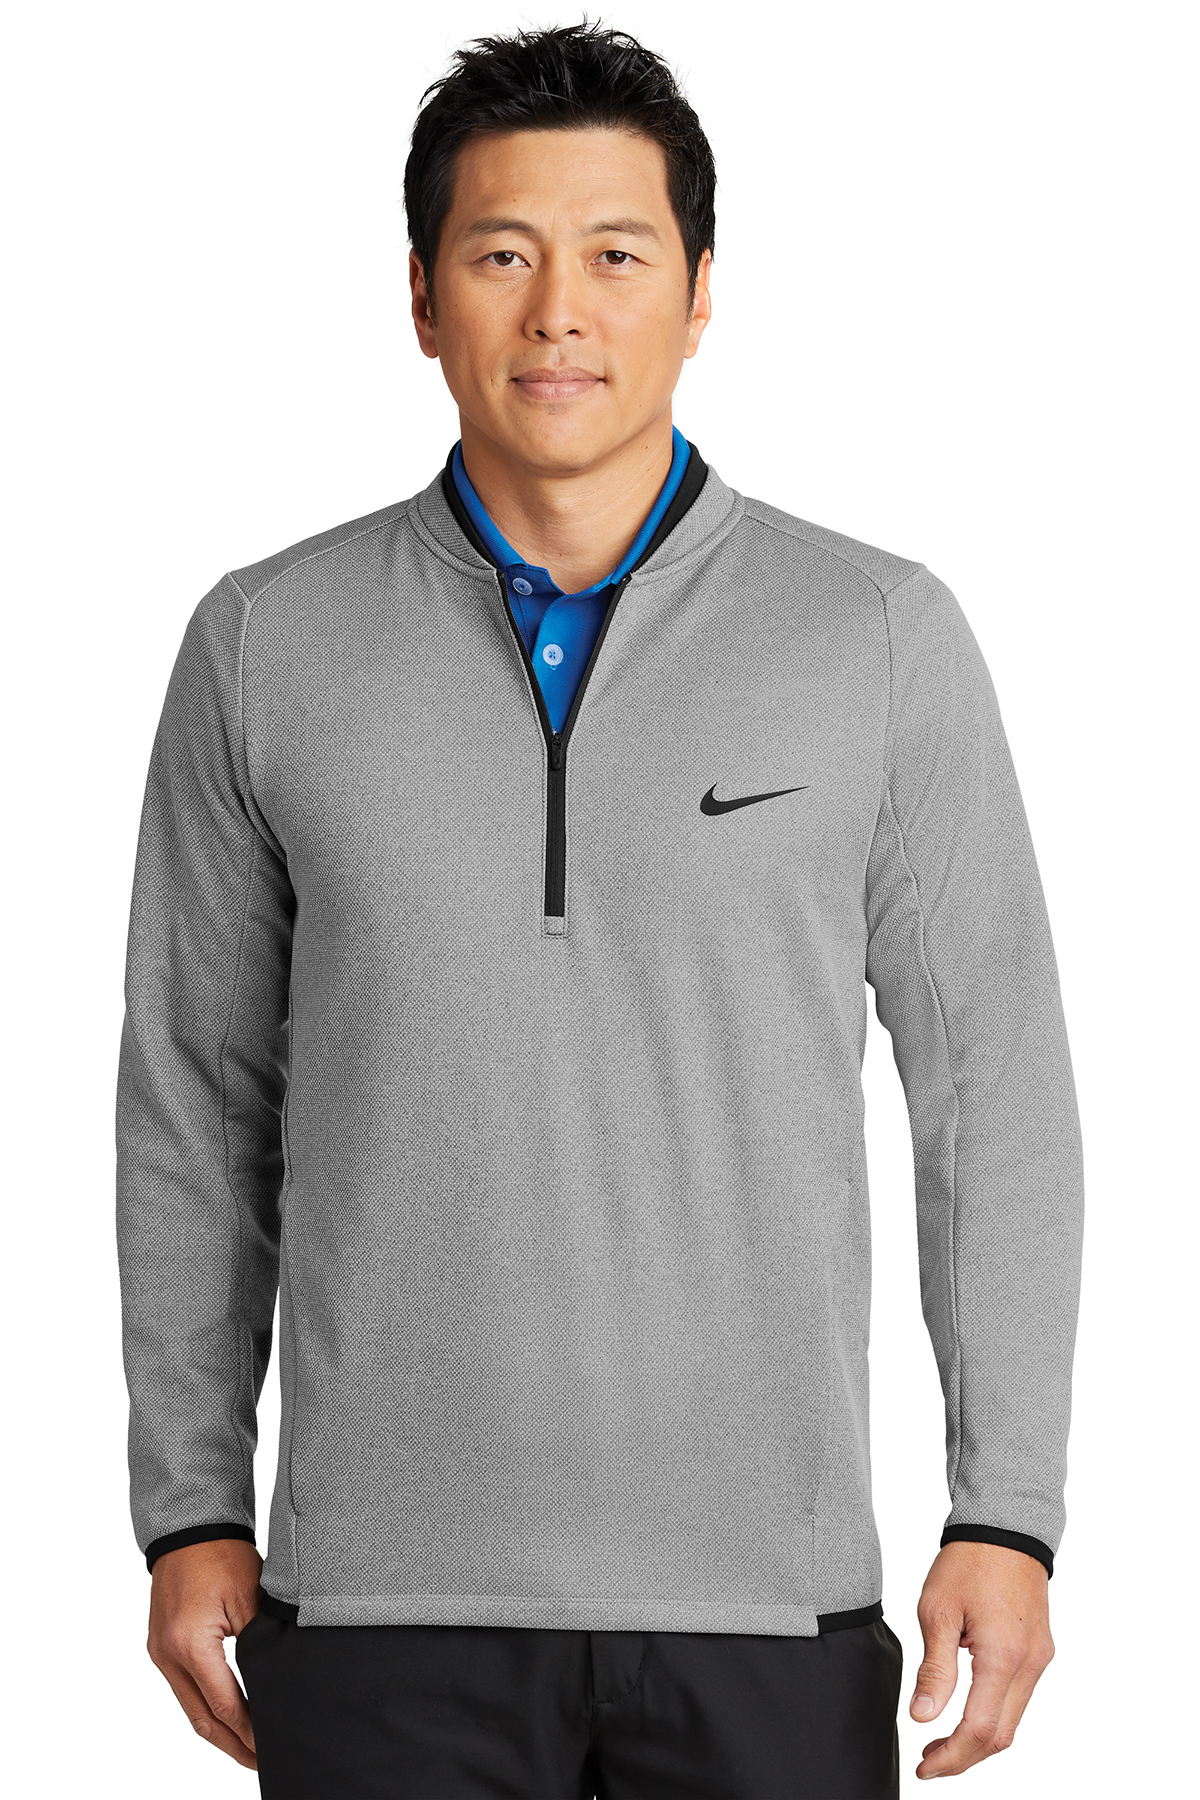 Nike Golf NKAH6267 - Nike Therma-FIT Textured Fleece ...